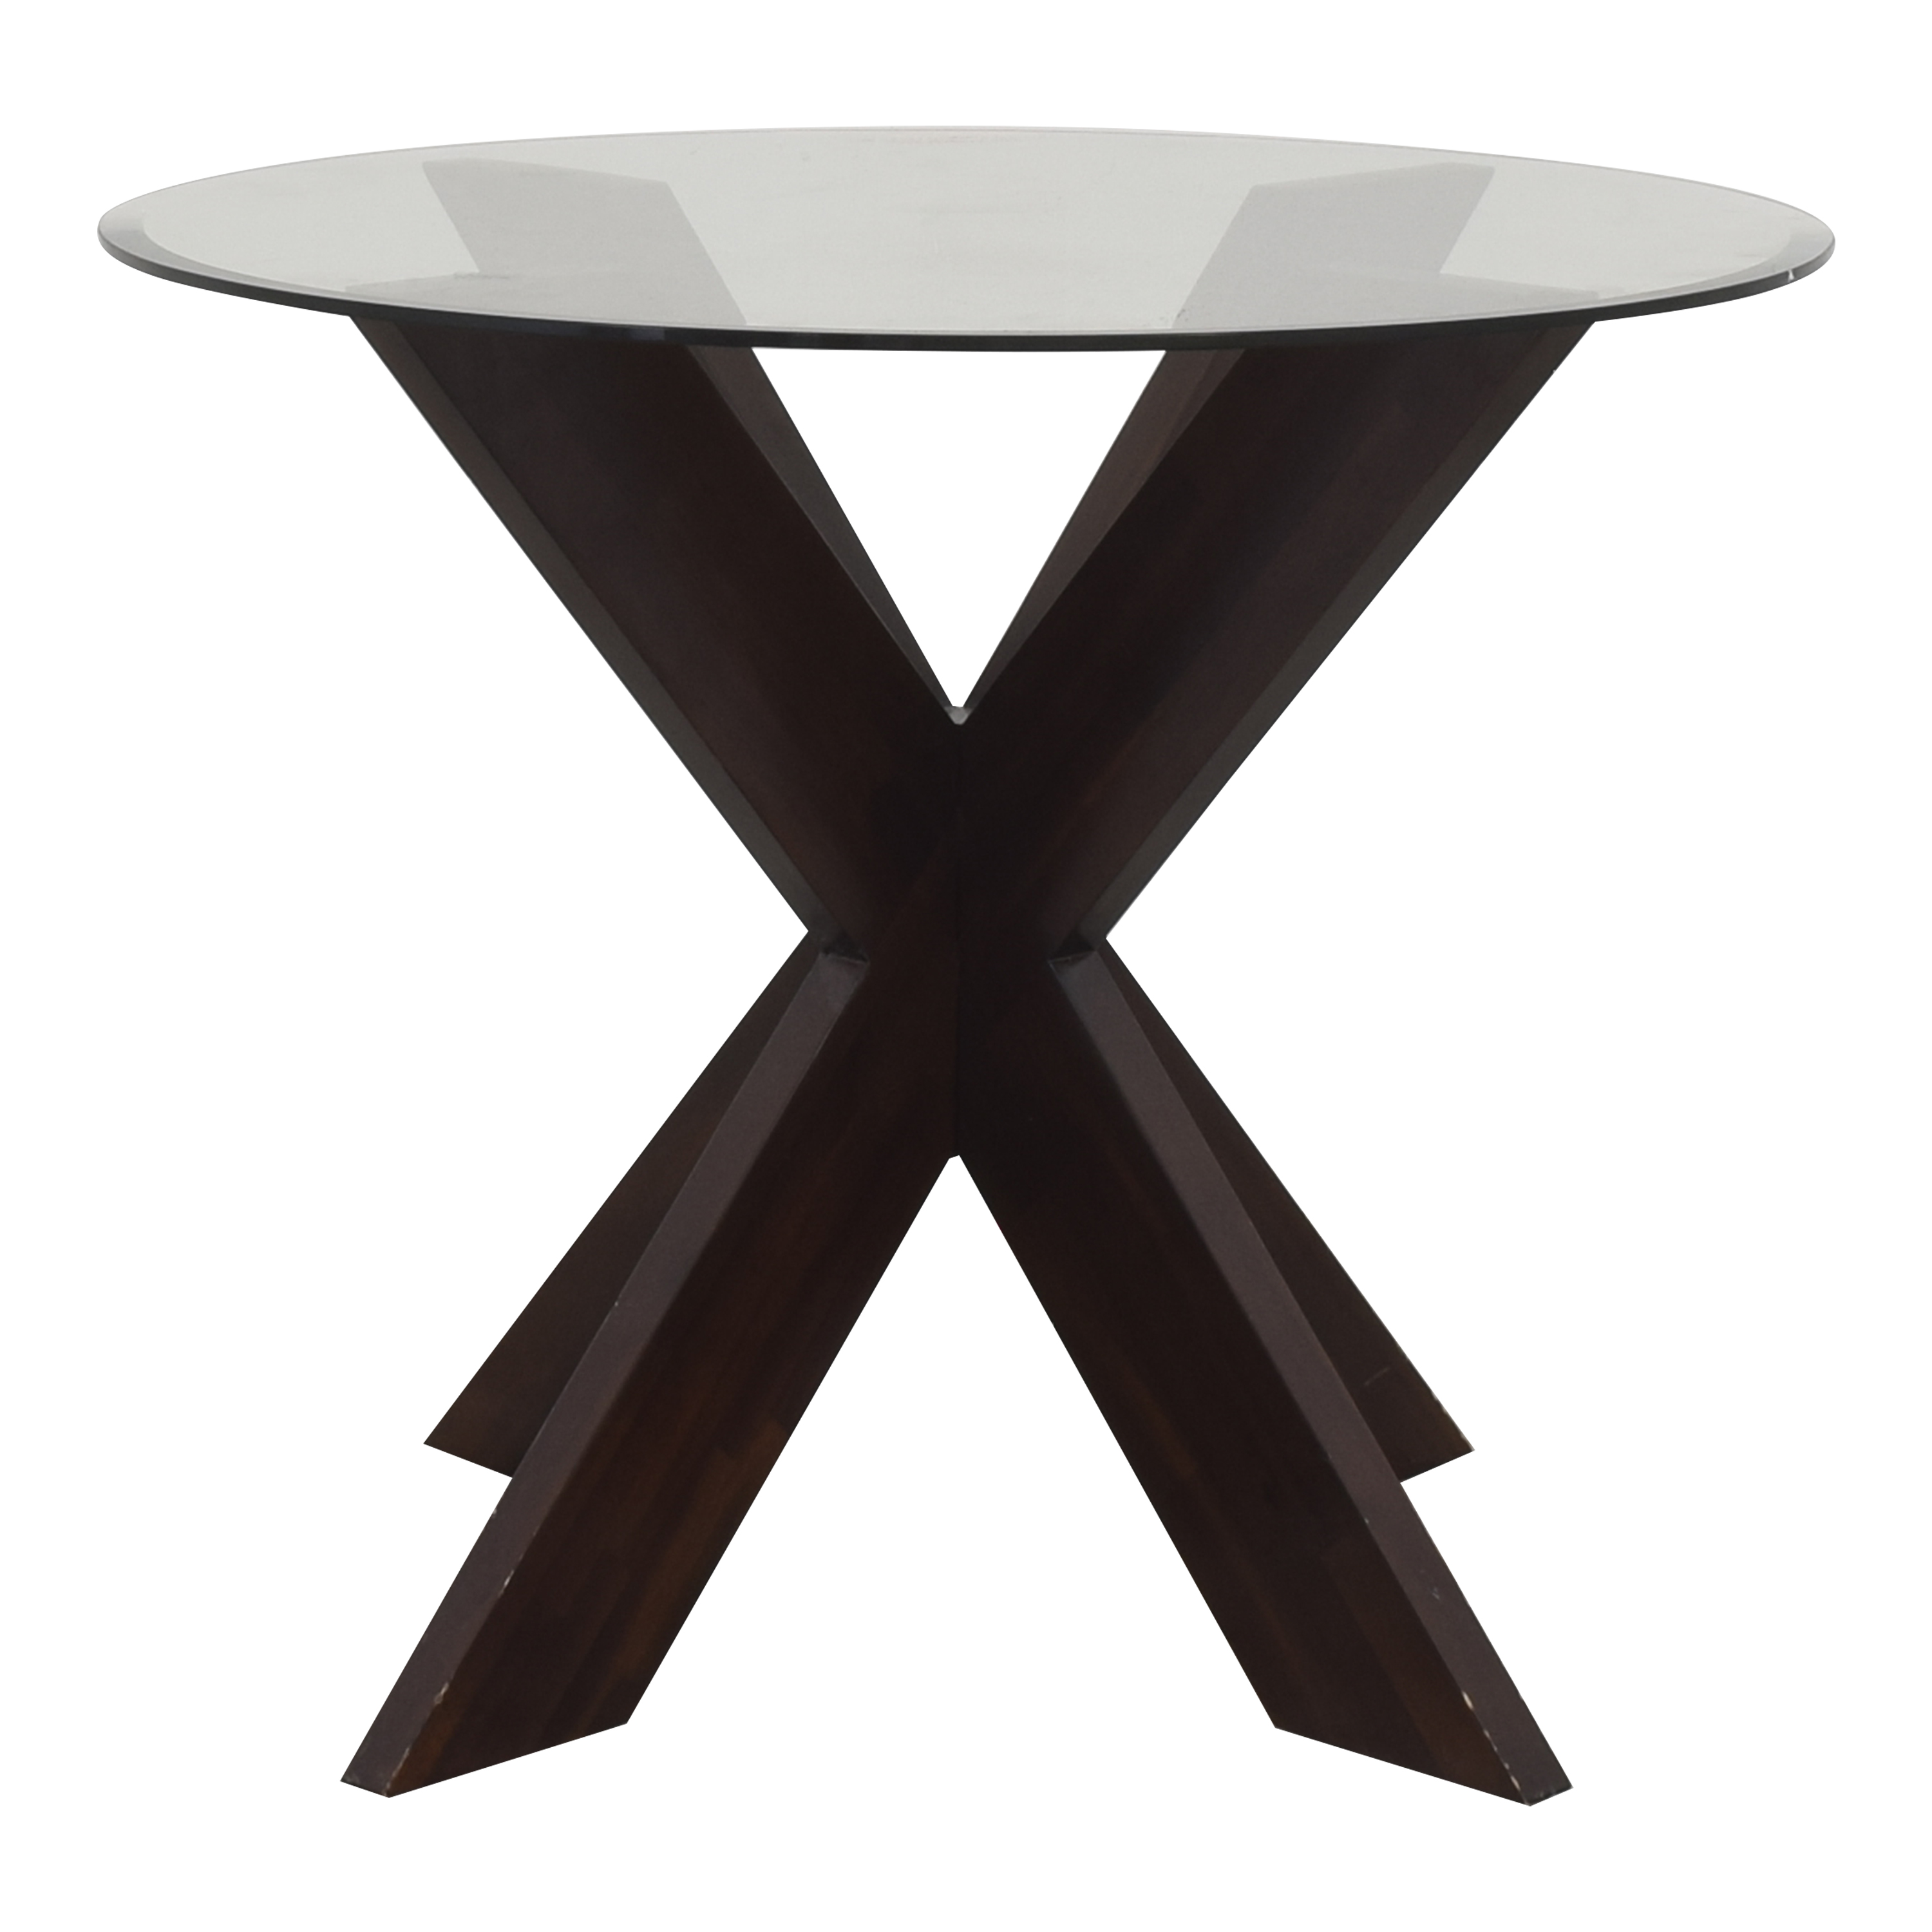 Pier 1 Pier 1 Simon Java X Dining Table on sale